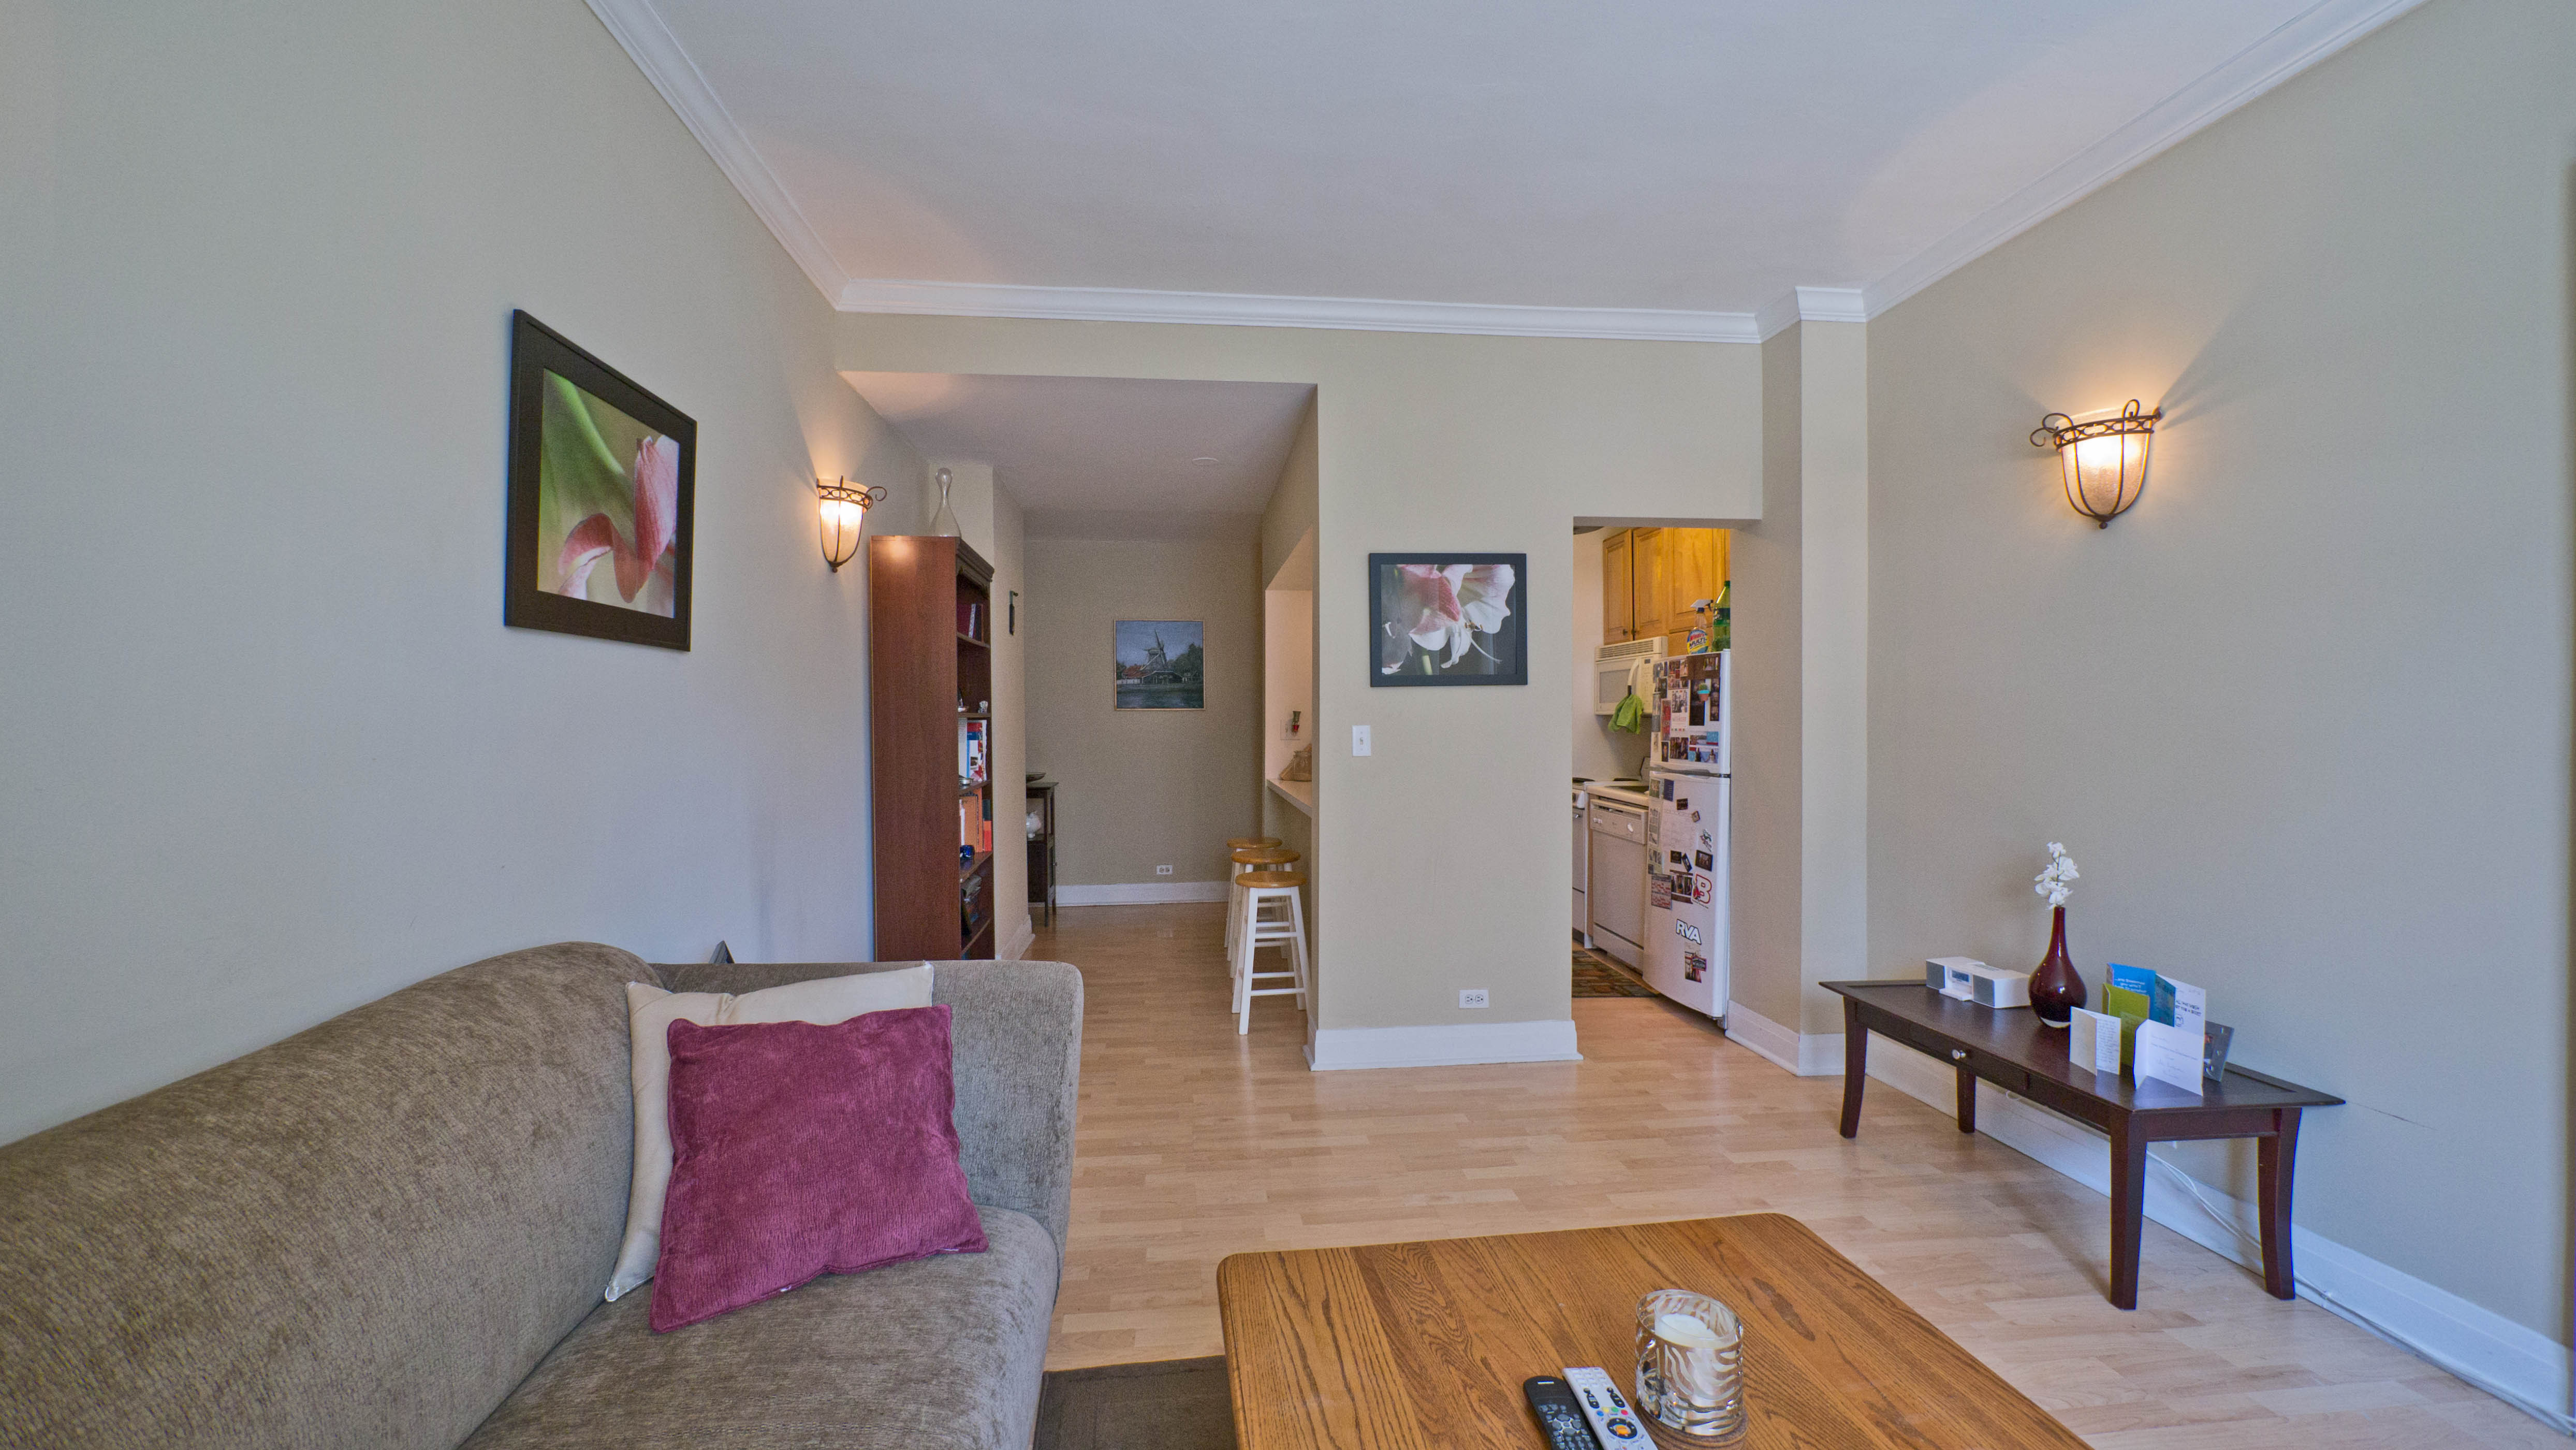 1036 north dearborn apartments gold coast yochicago for Floor and decor chicago